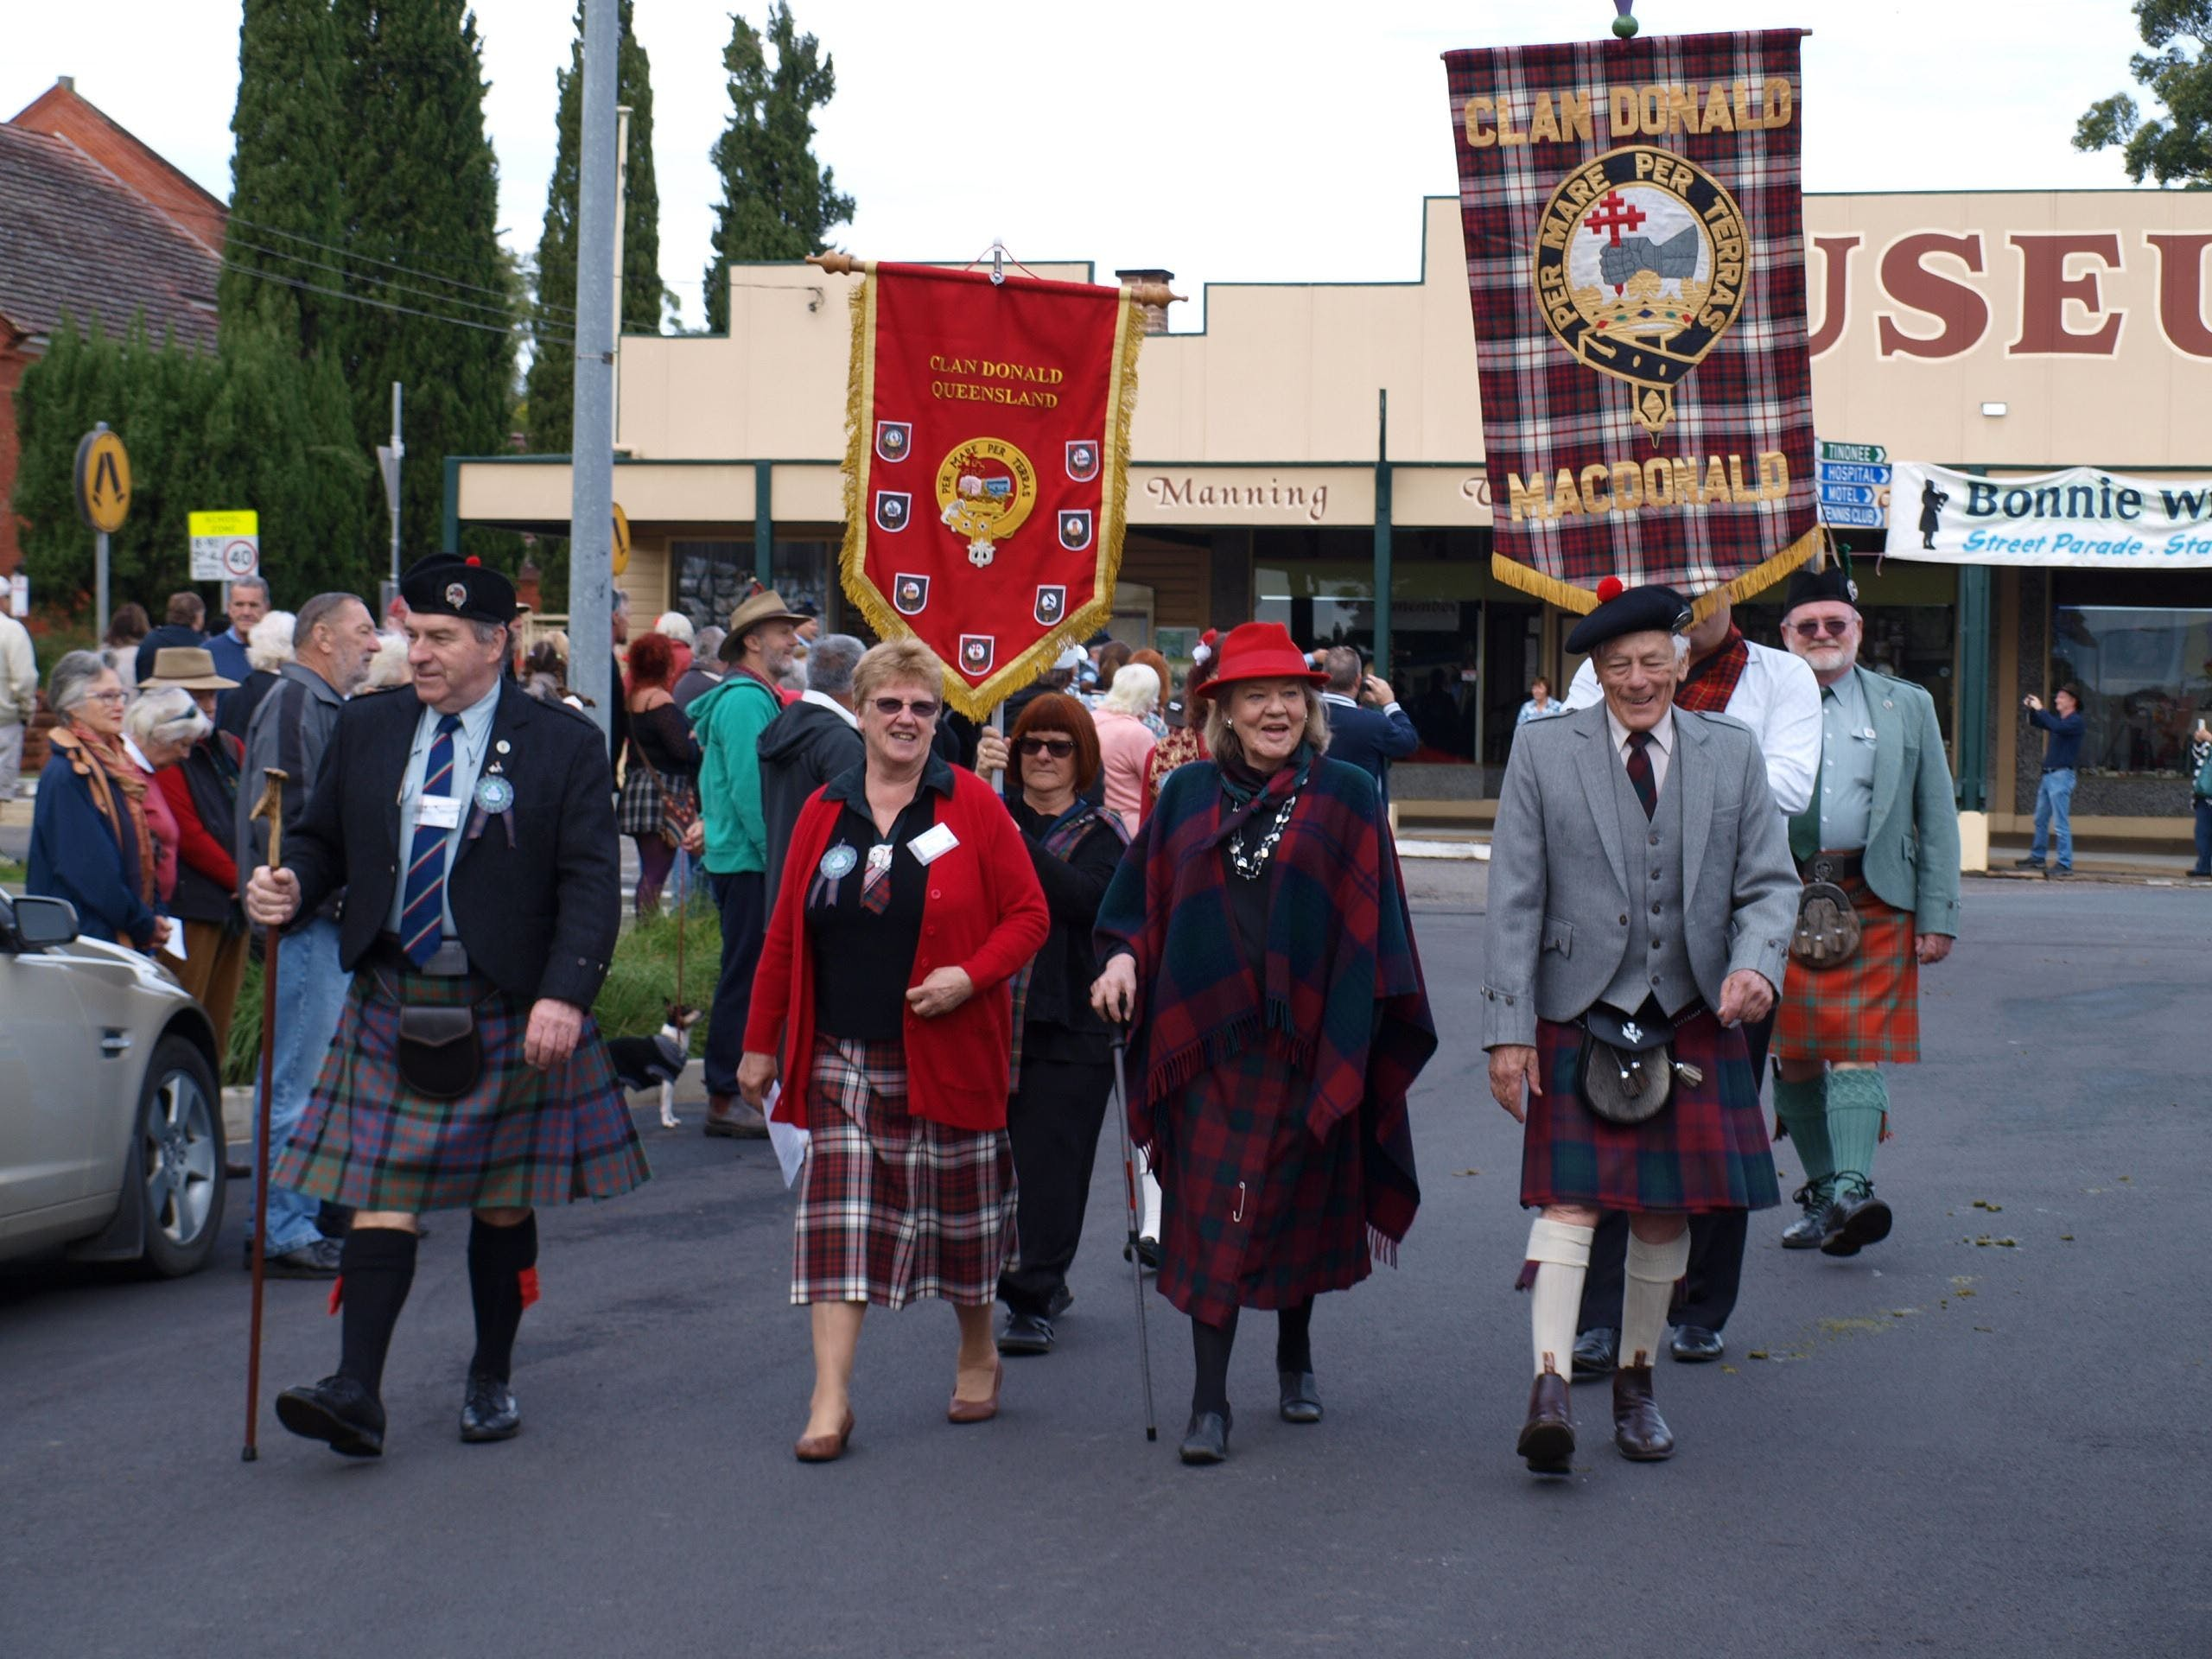 Bonnie Wingham Scottish Festival - Tourism Gold Coast